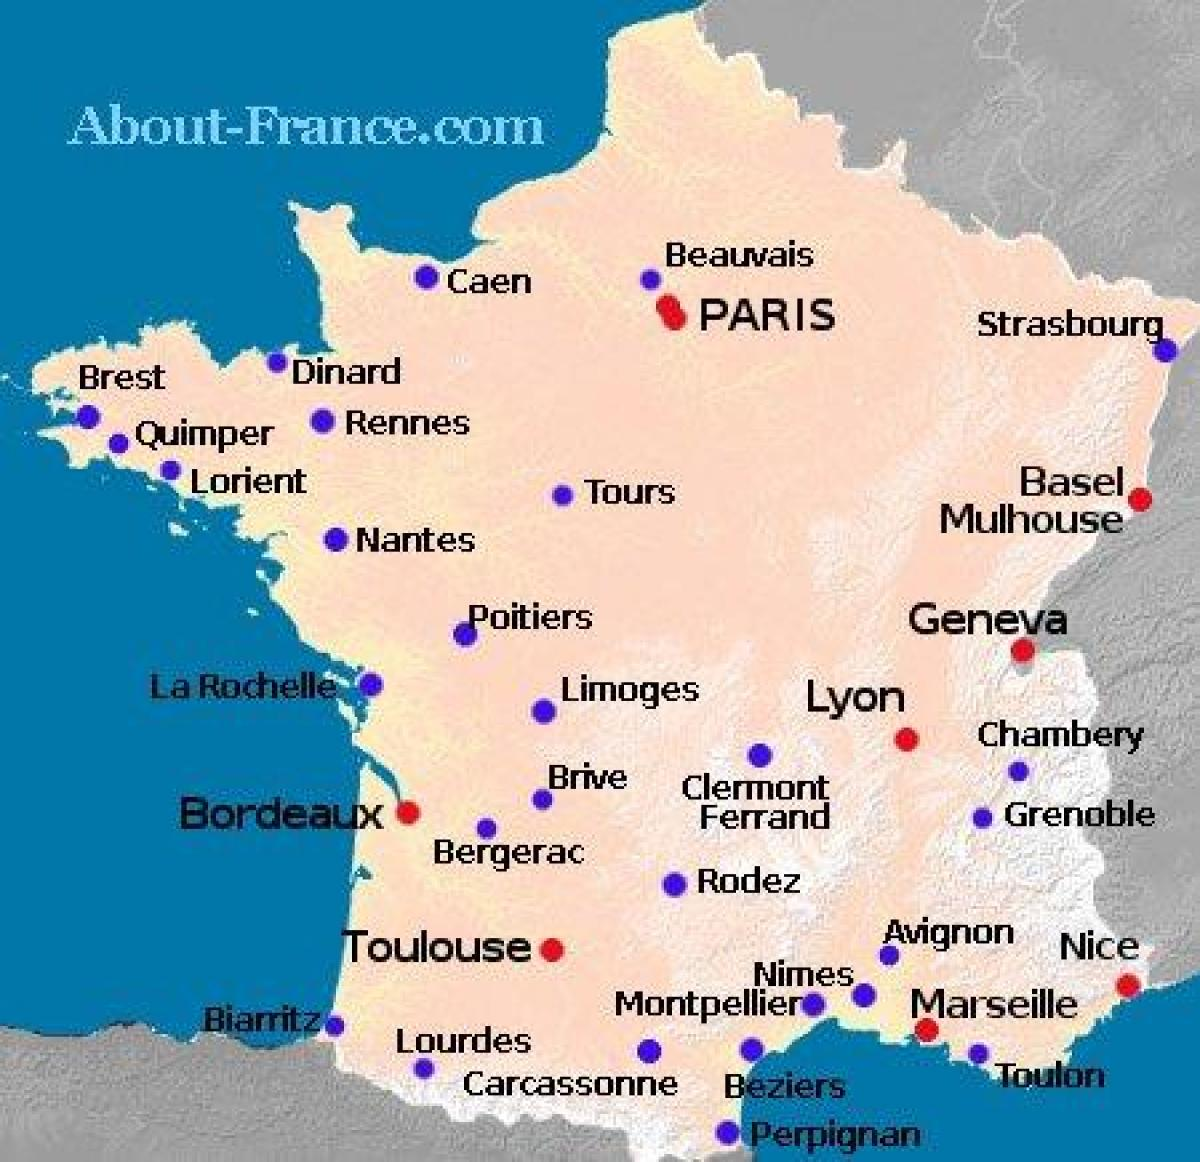 map of France showing airports